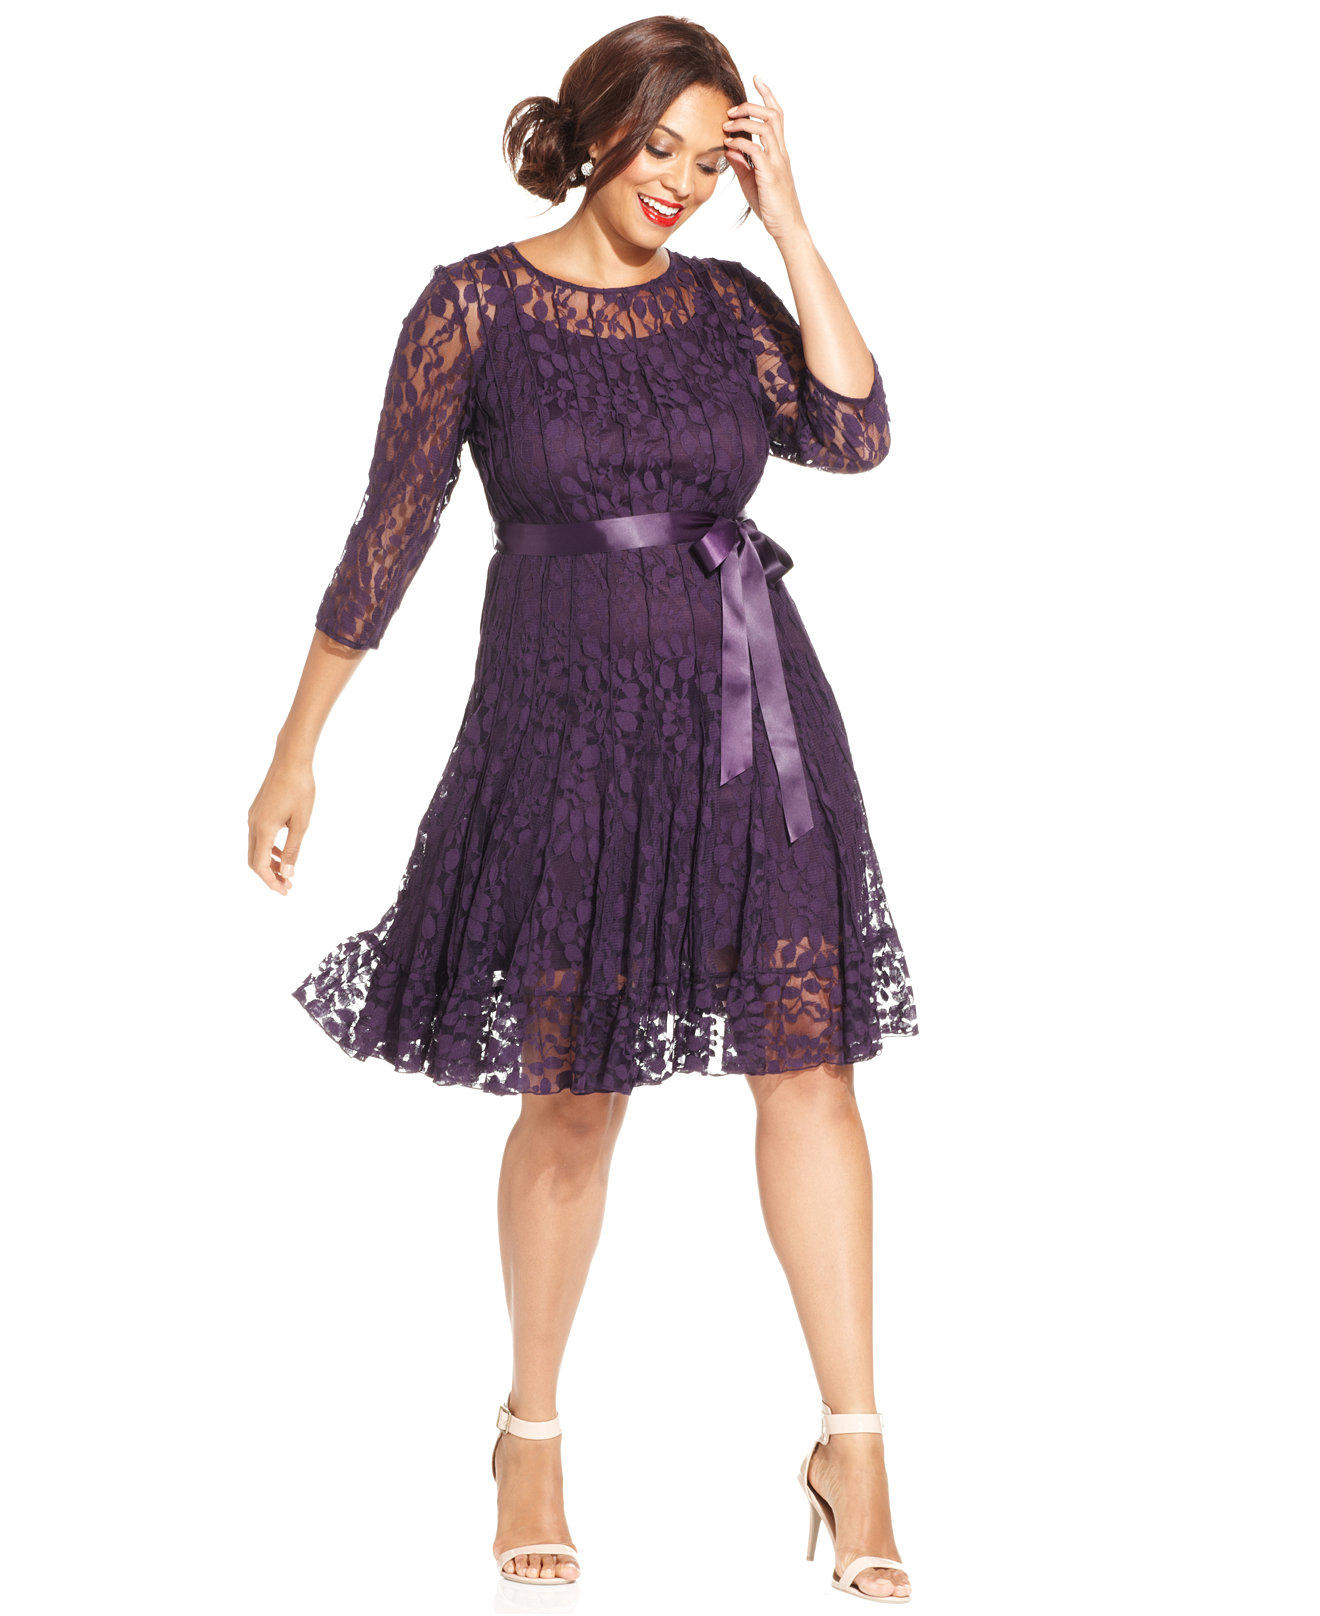 Msk Plus Size Illusion Floral Lace Dress From Macys Obsessed